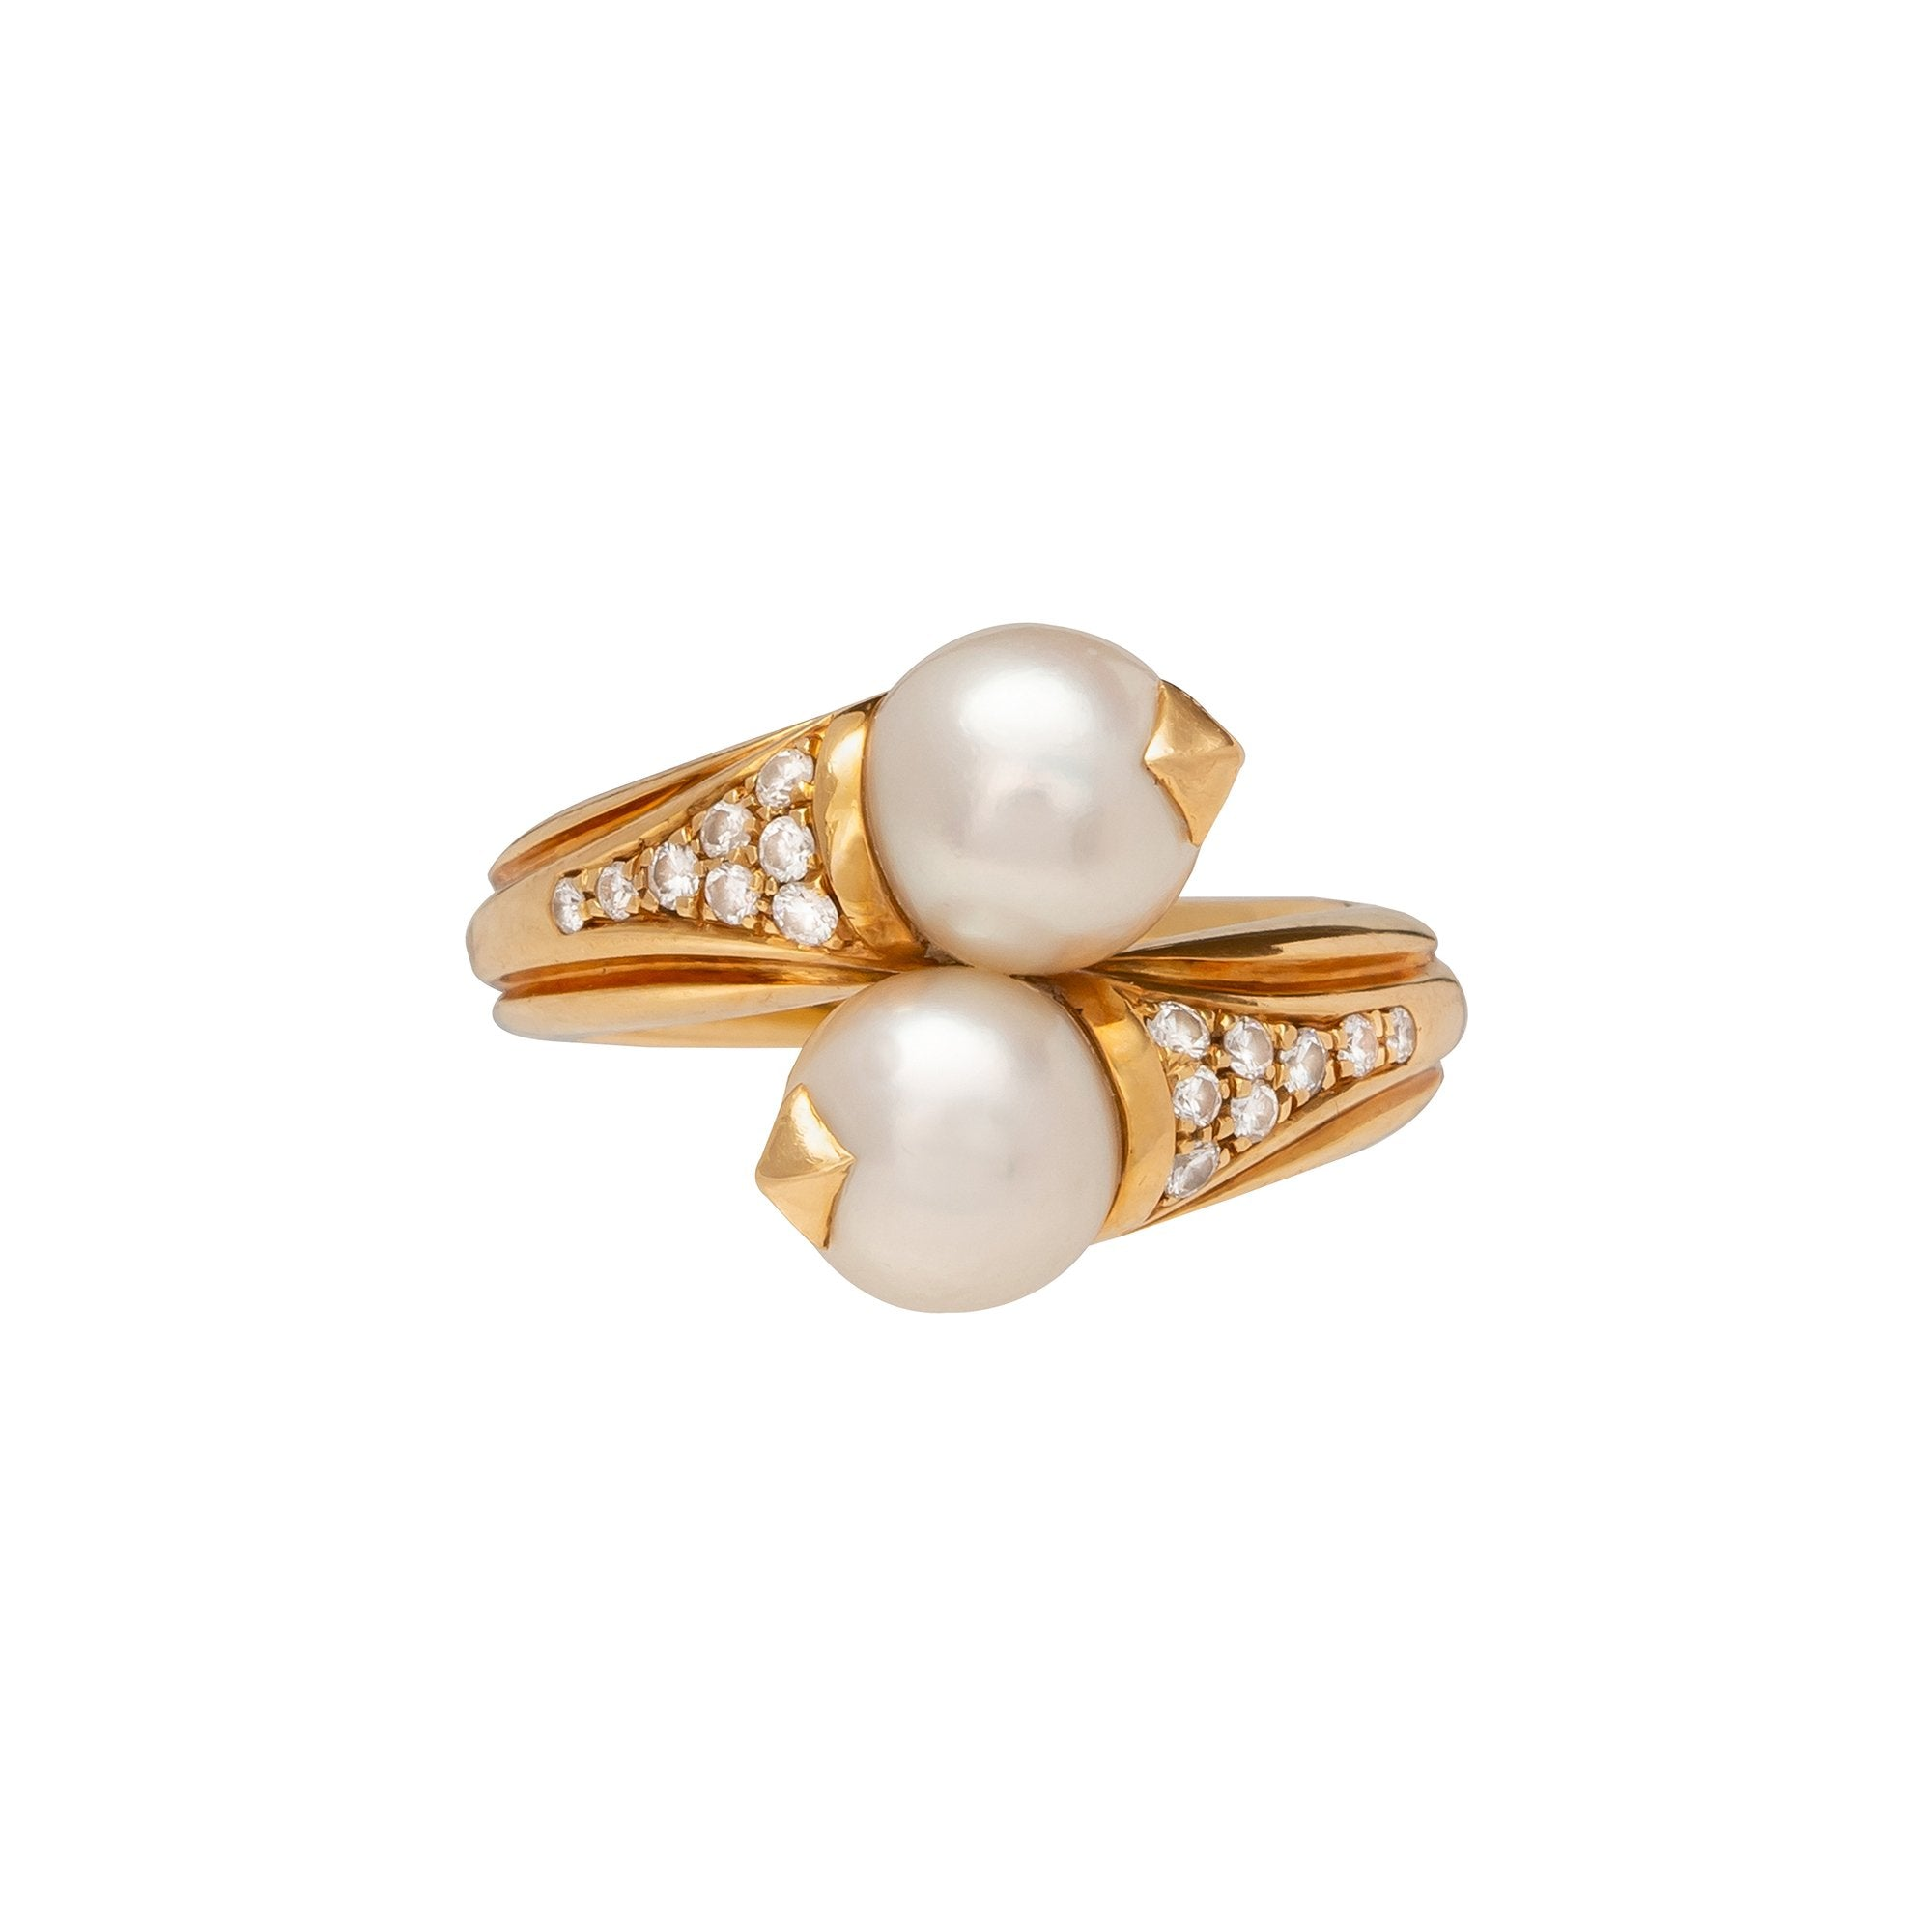 Vintage Bulgari Pearl Ring - Antique & Vintage - Rings | Broken English Jewelry